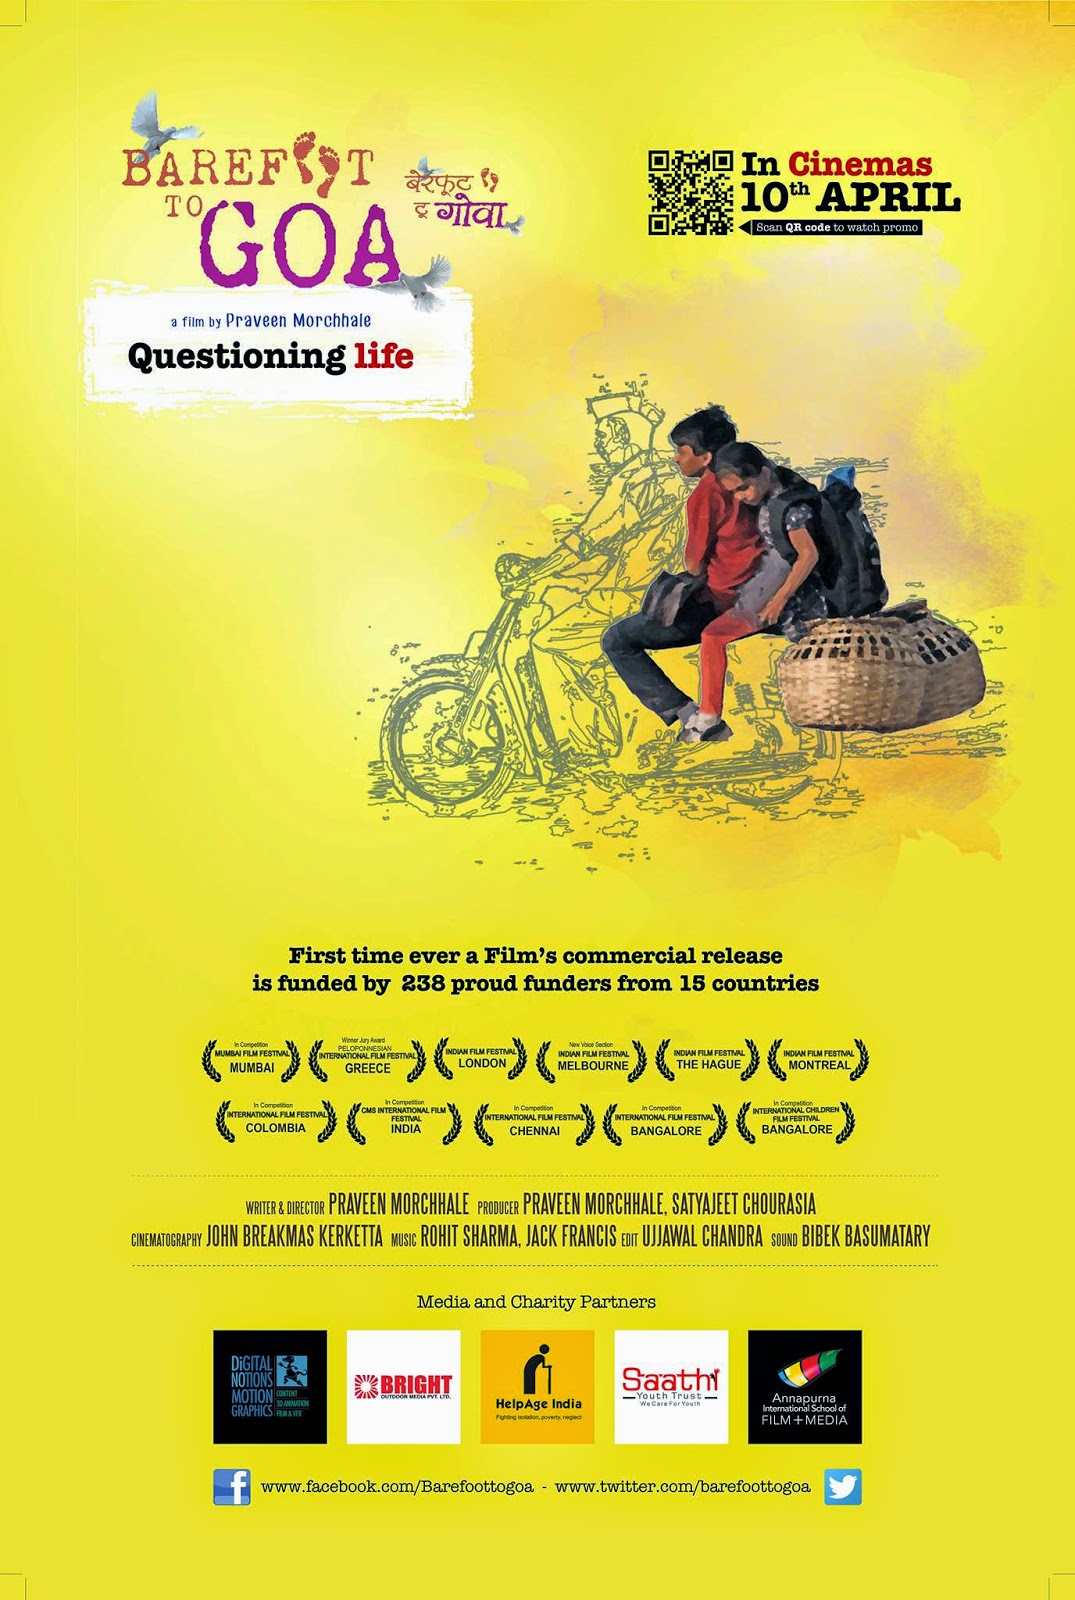 Barefoot to Goa, Official Release 10th April, Directed by Praveen Morchhale, Indie